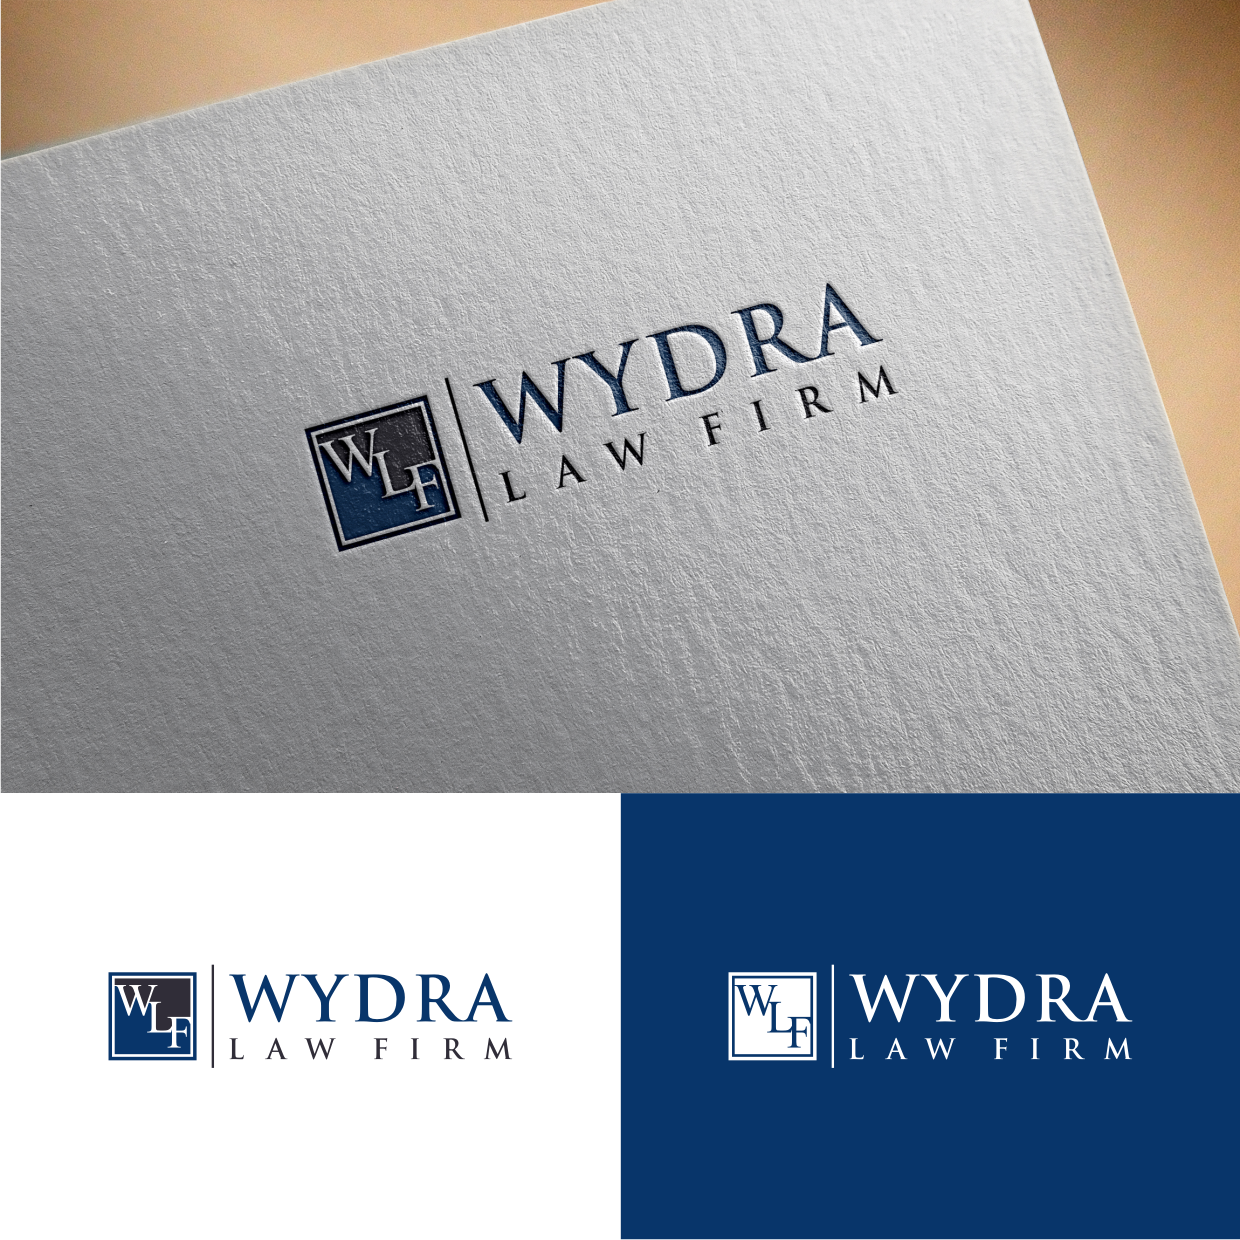 Winning Entry #179 for Logo Design contest - Attorney & Law Logo Design required by Wydra Law Firm PLLC - original